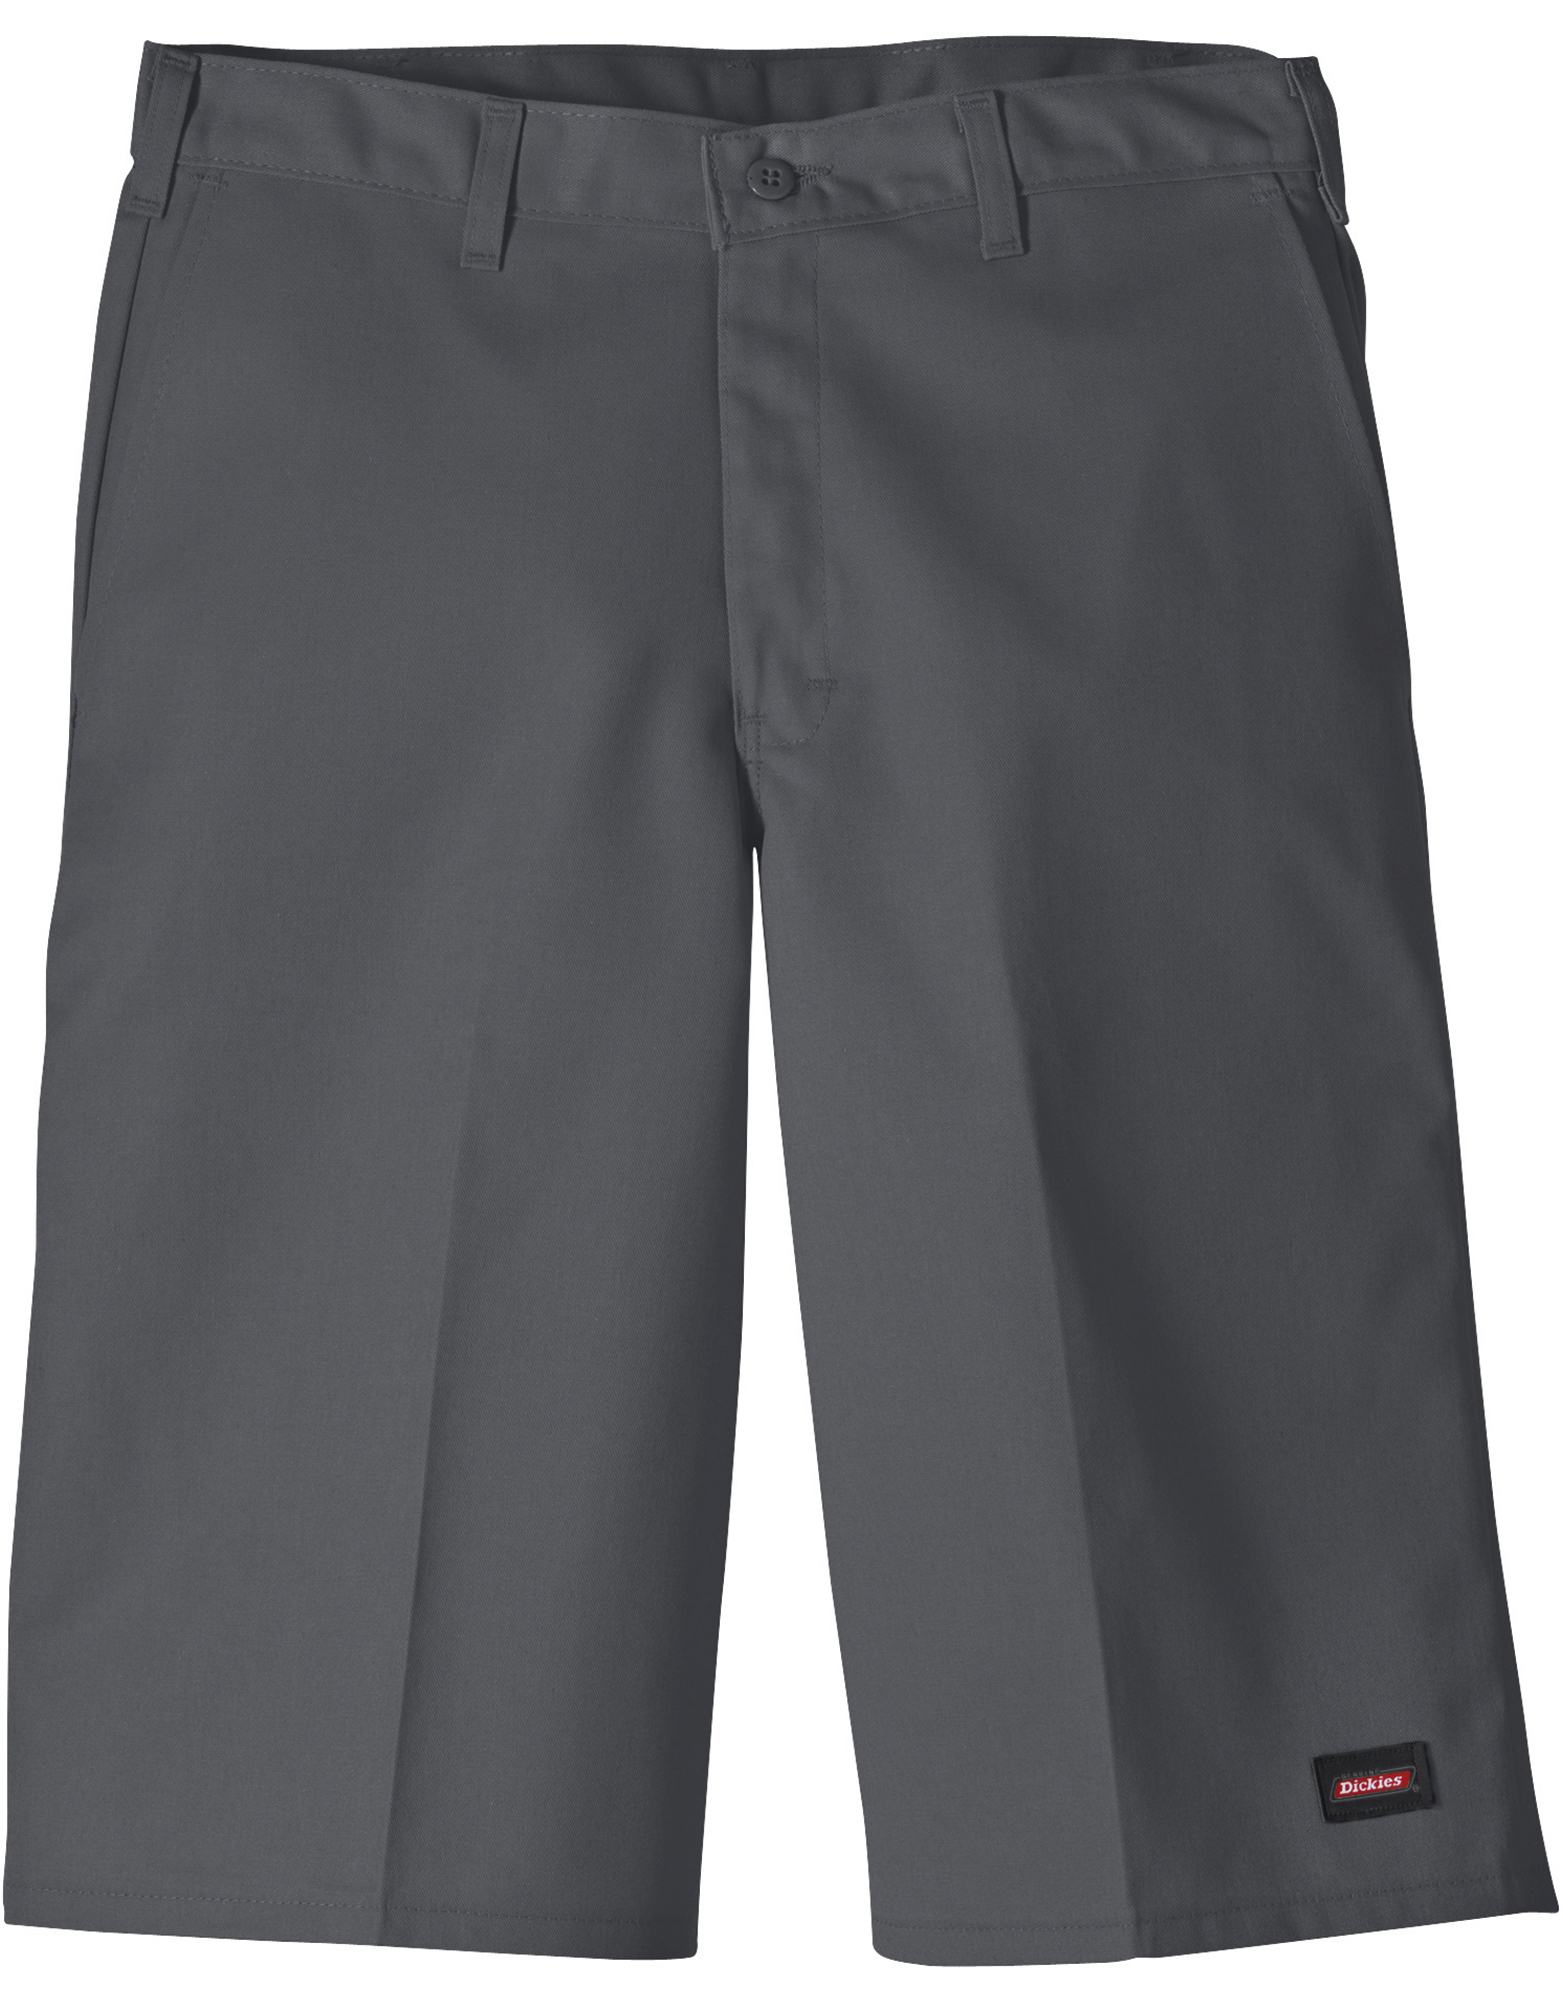 "Genuine Dickies 13"" Flat Front Multi-use Pocket Shorts - Charcoal Gray (CH)"